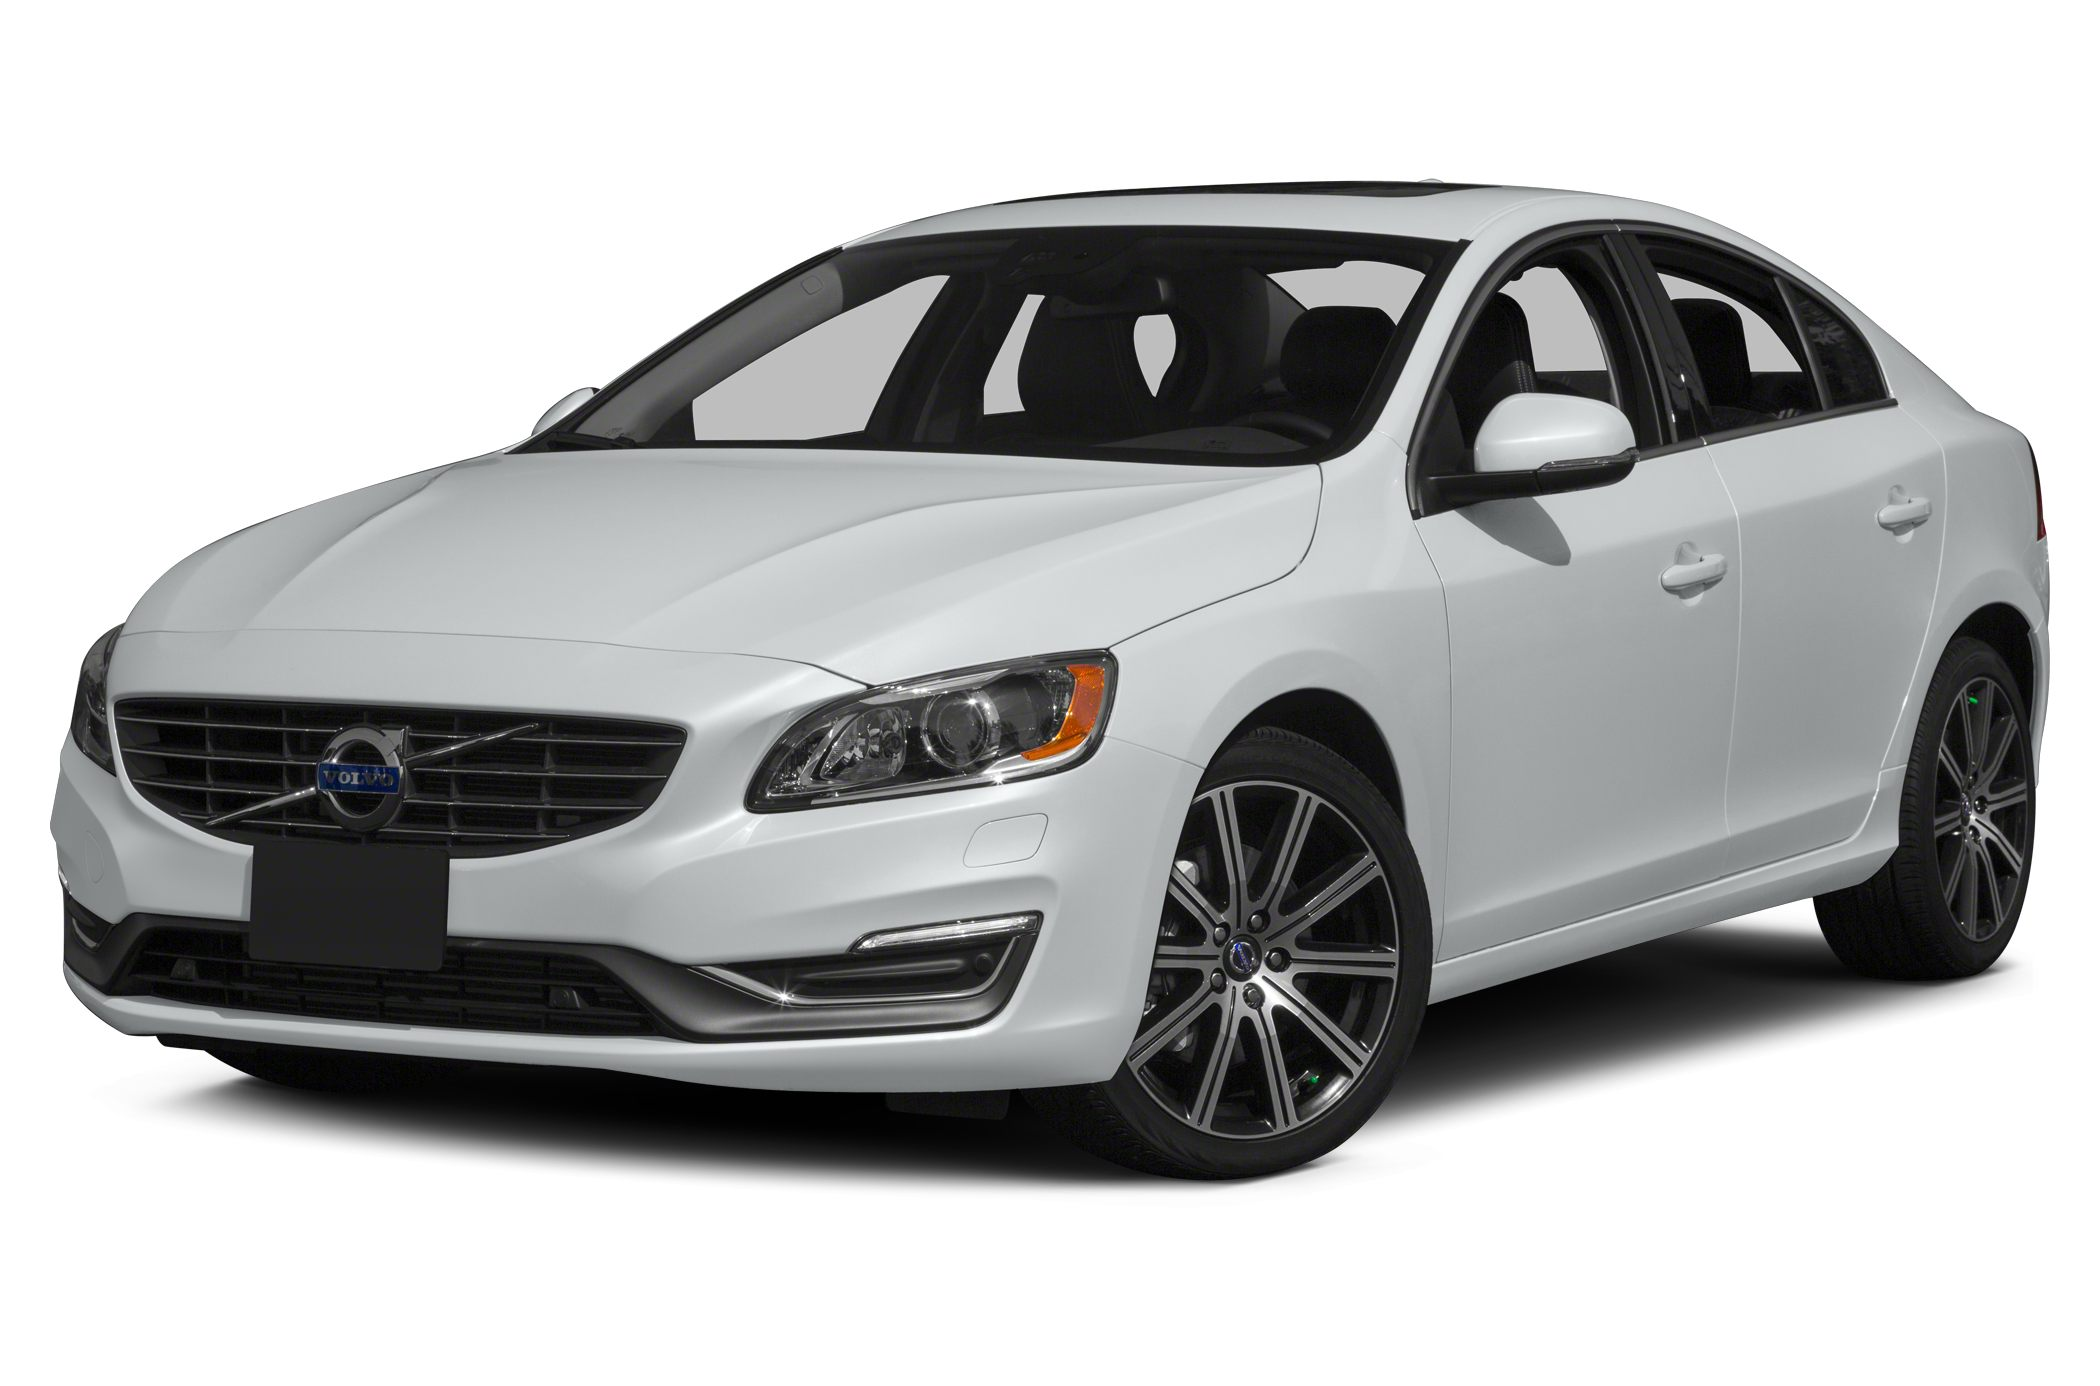 2015 Volvo S60 T6 Platinum Sedan for sale in Charleston for $47,425 with 488 miles.